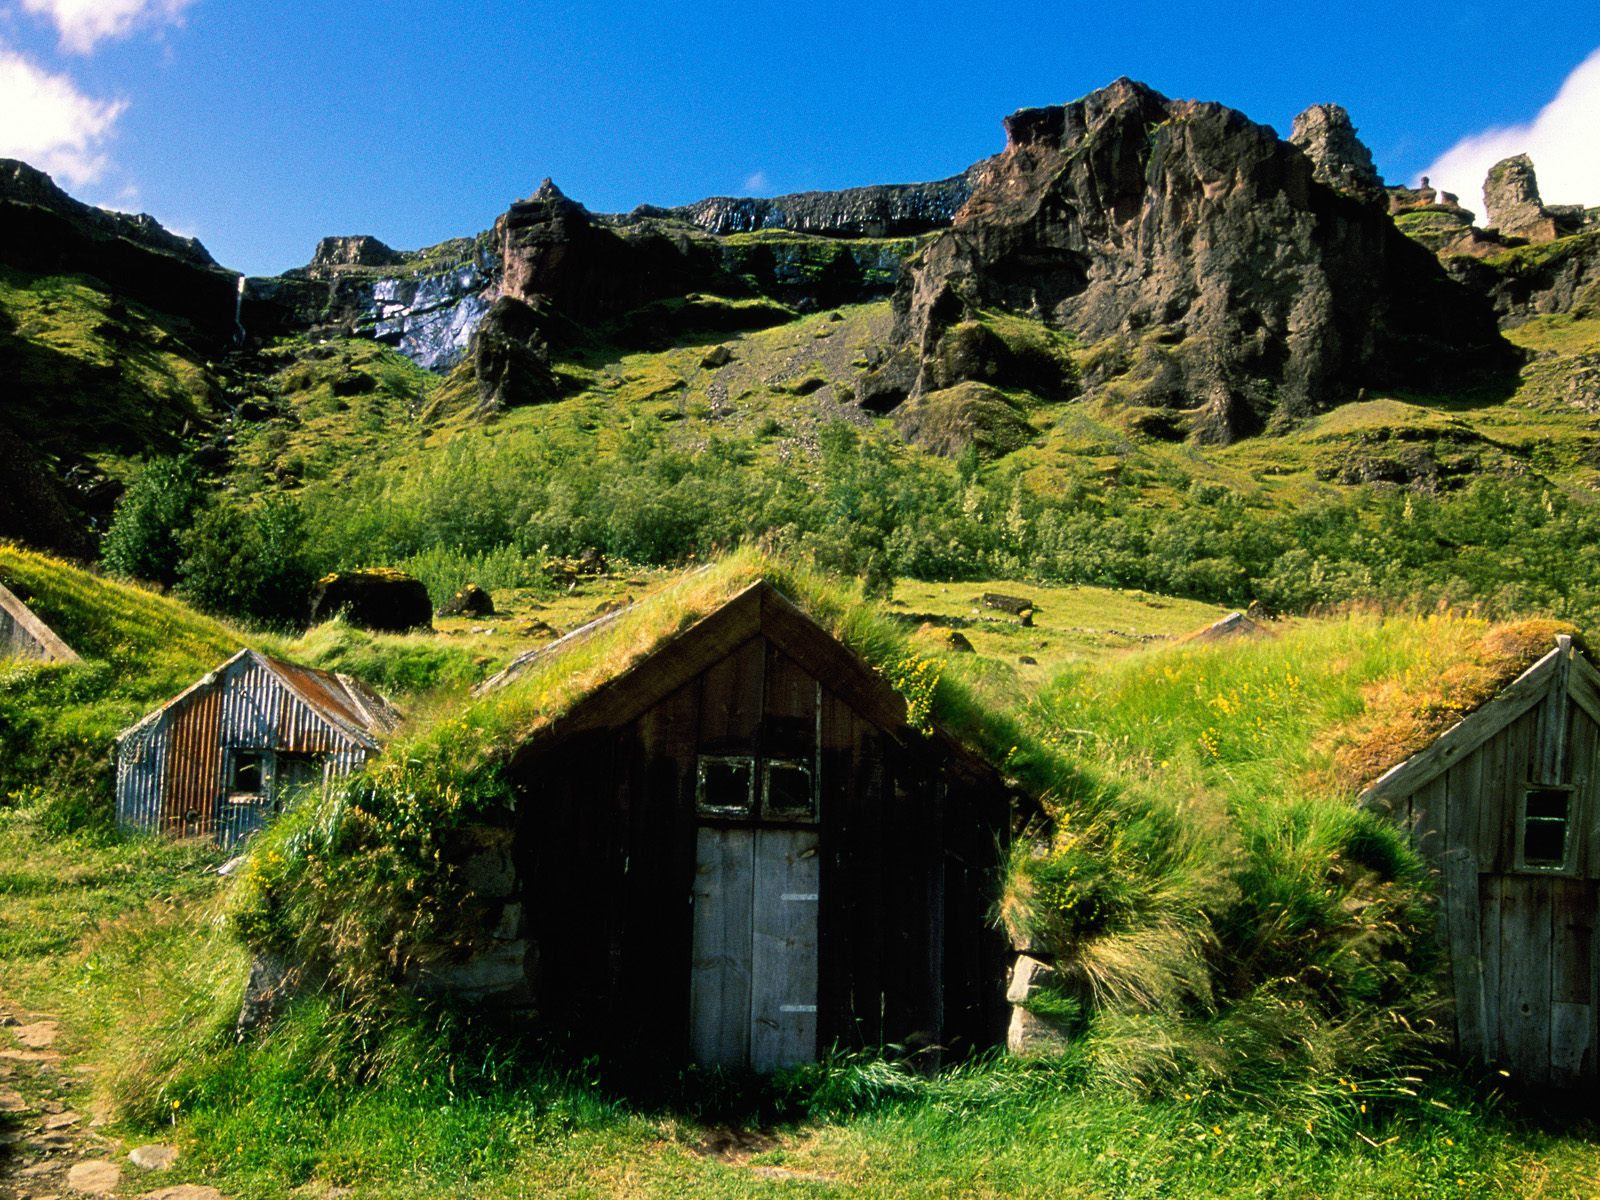 HQ Green Rooftops Iceland Wallpaper   HQ Wallpapers 1600x1200